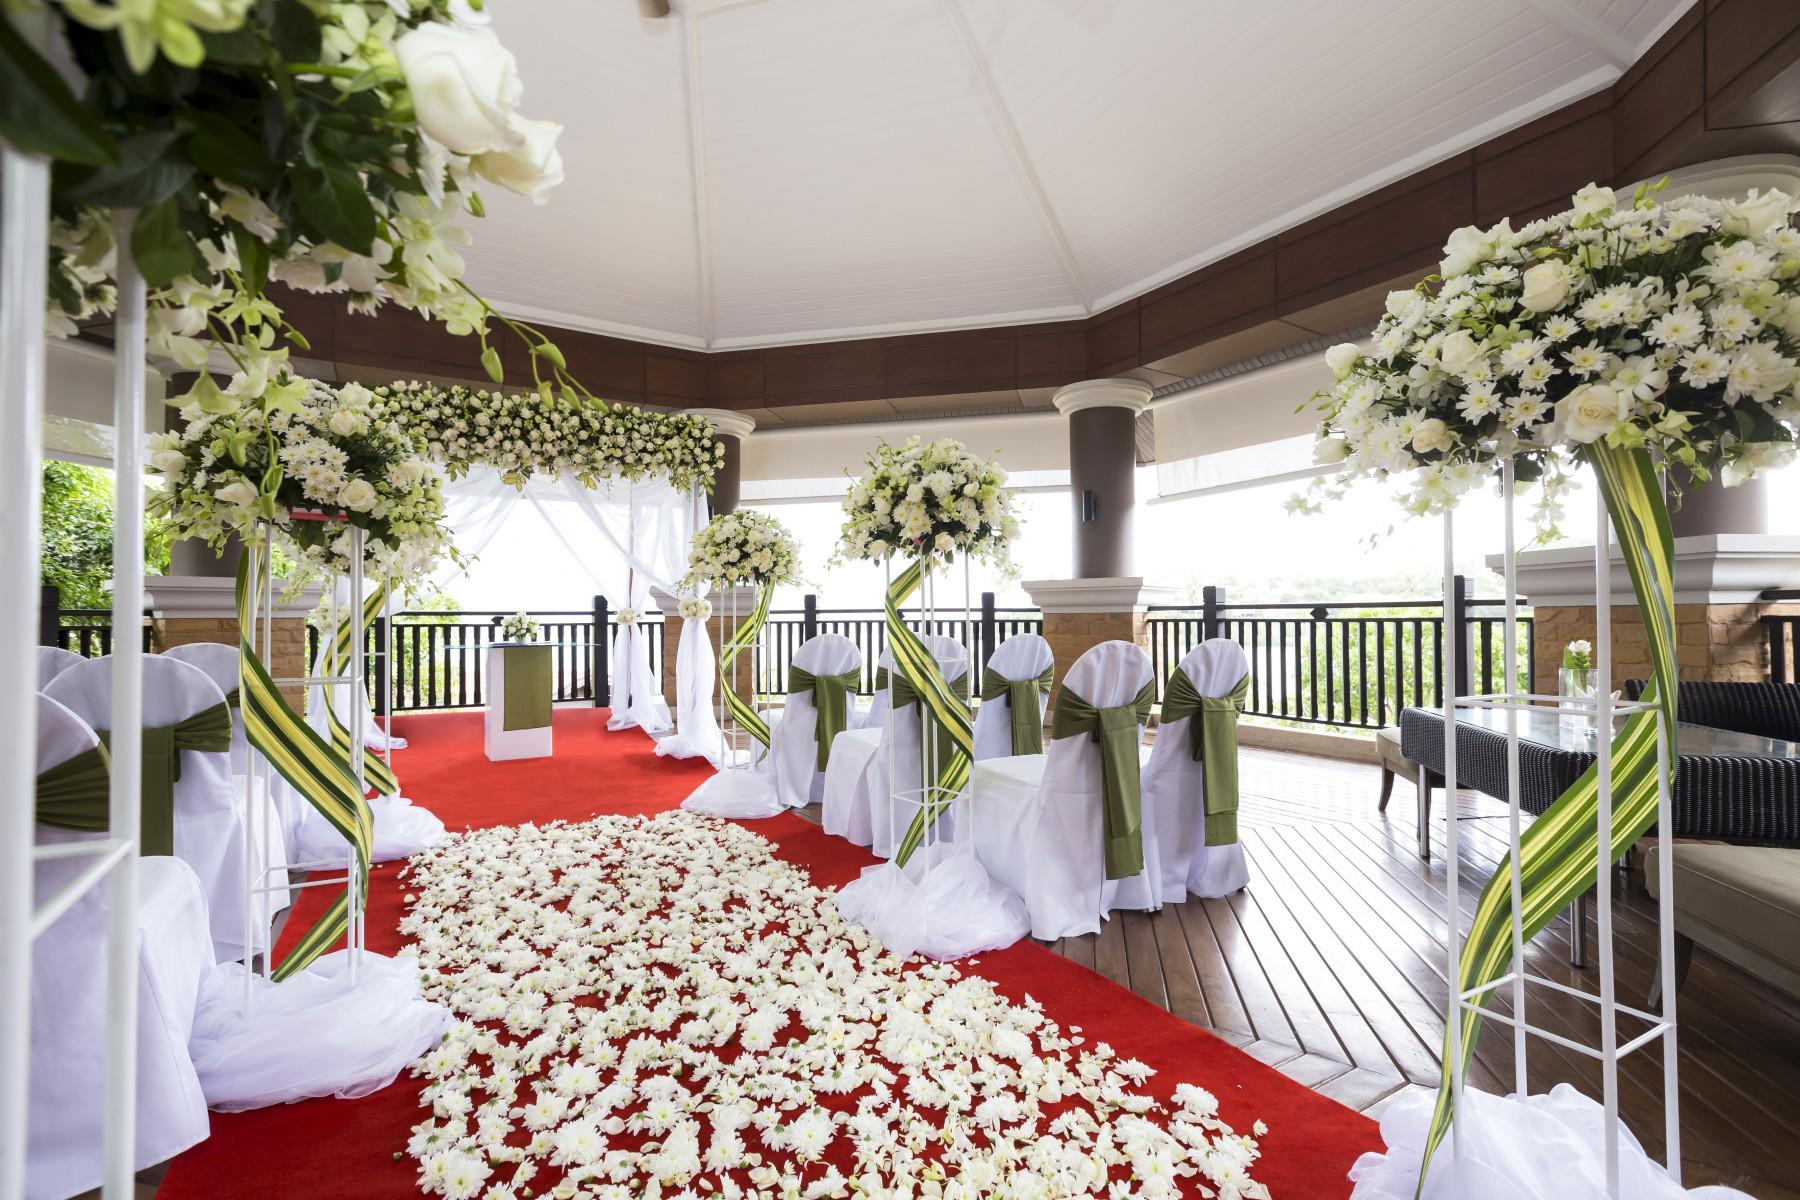 Phuket Weddings Are Made More Special with the Right Venue